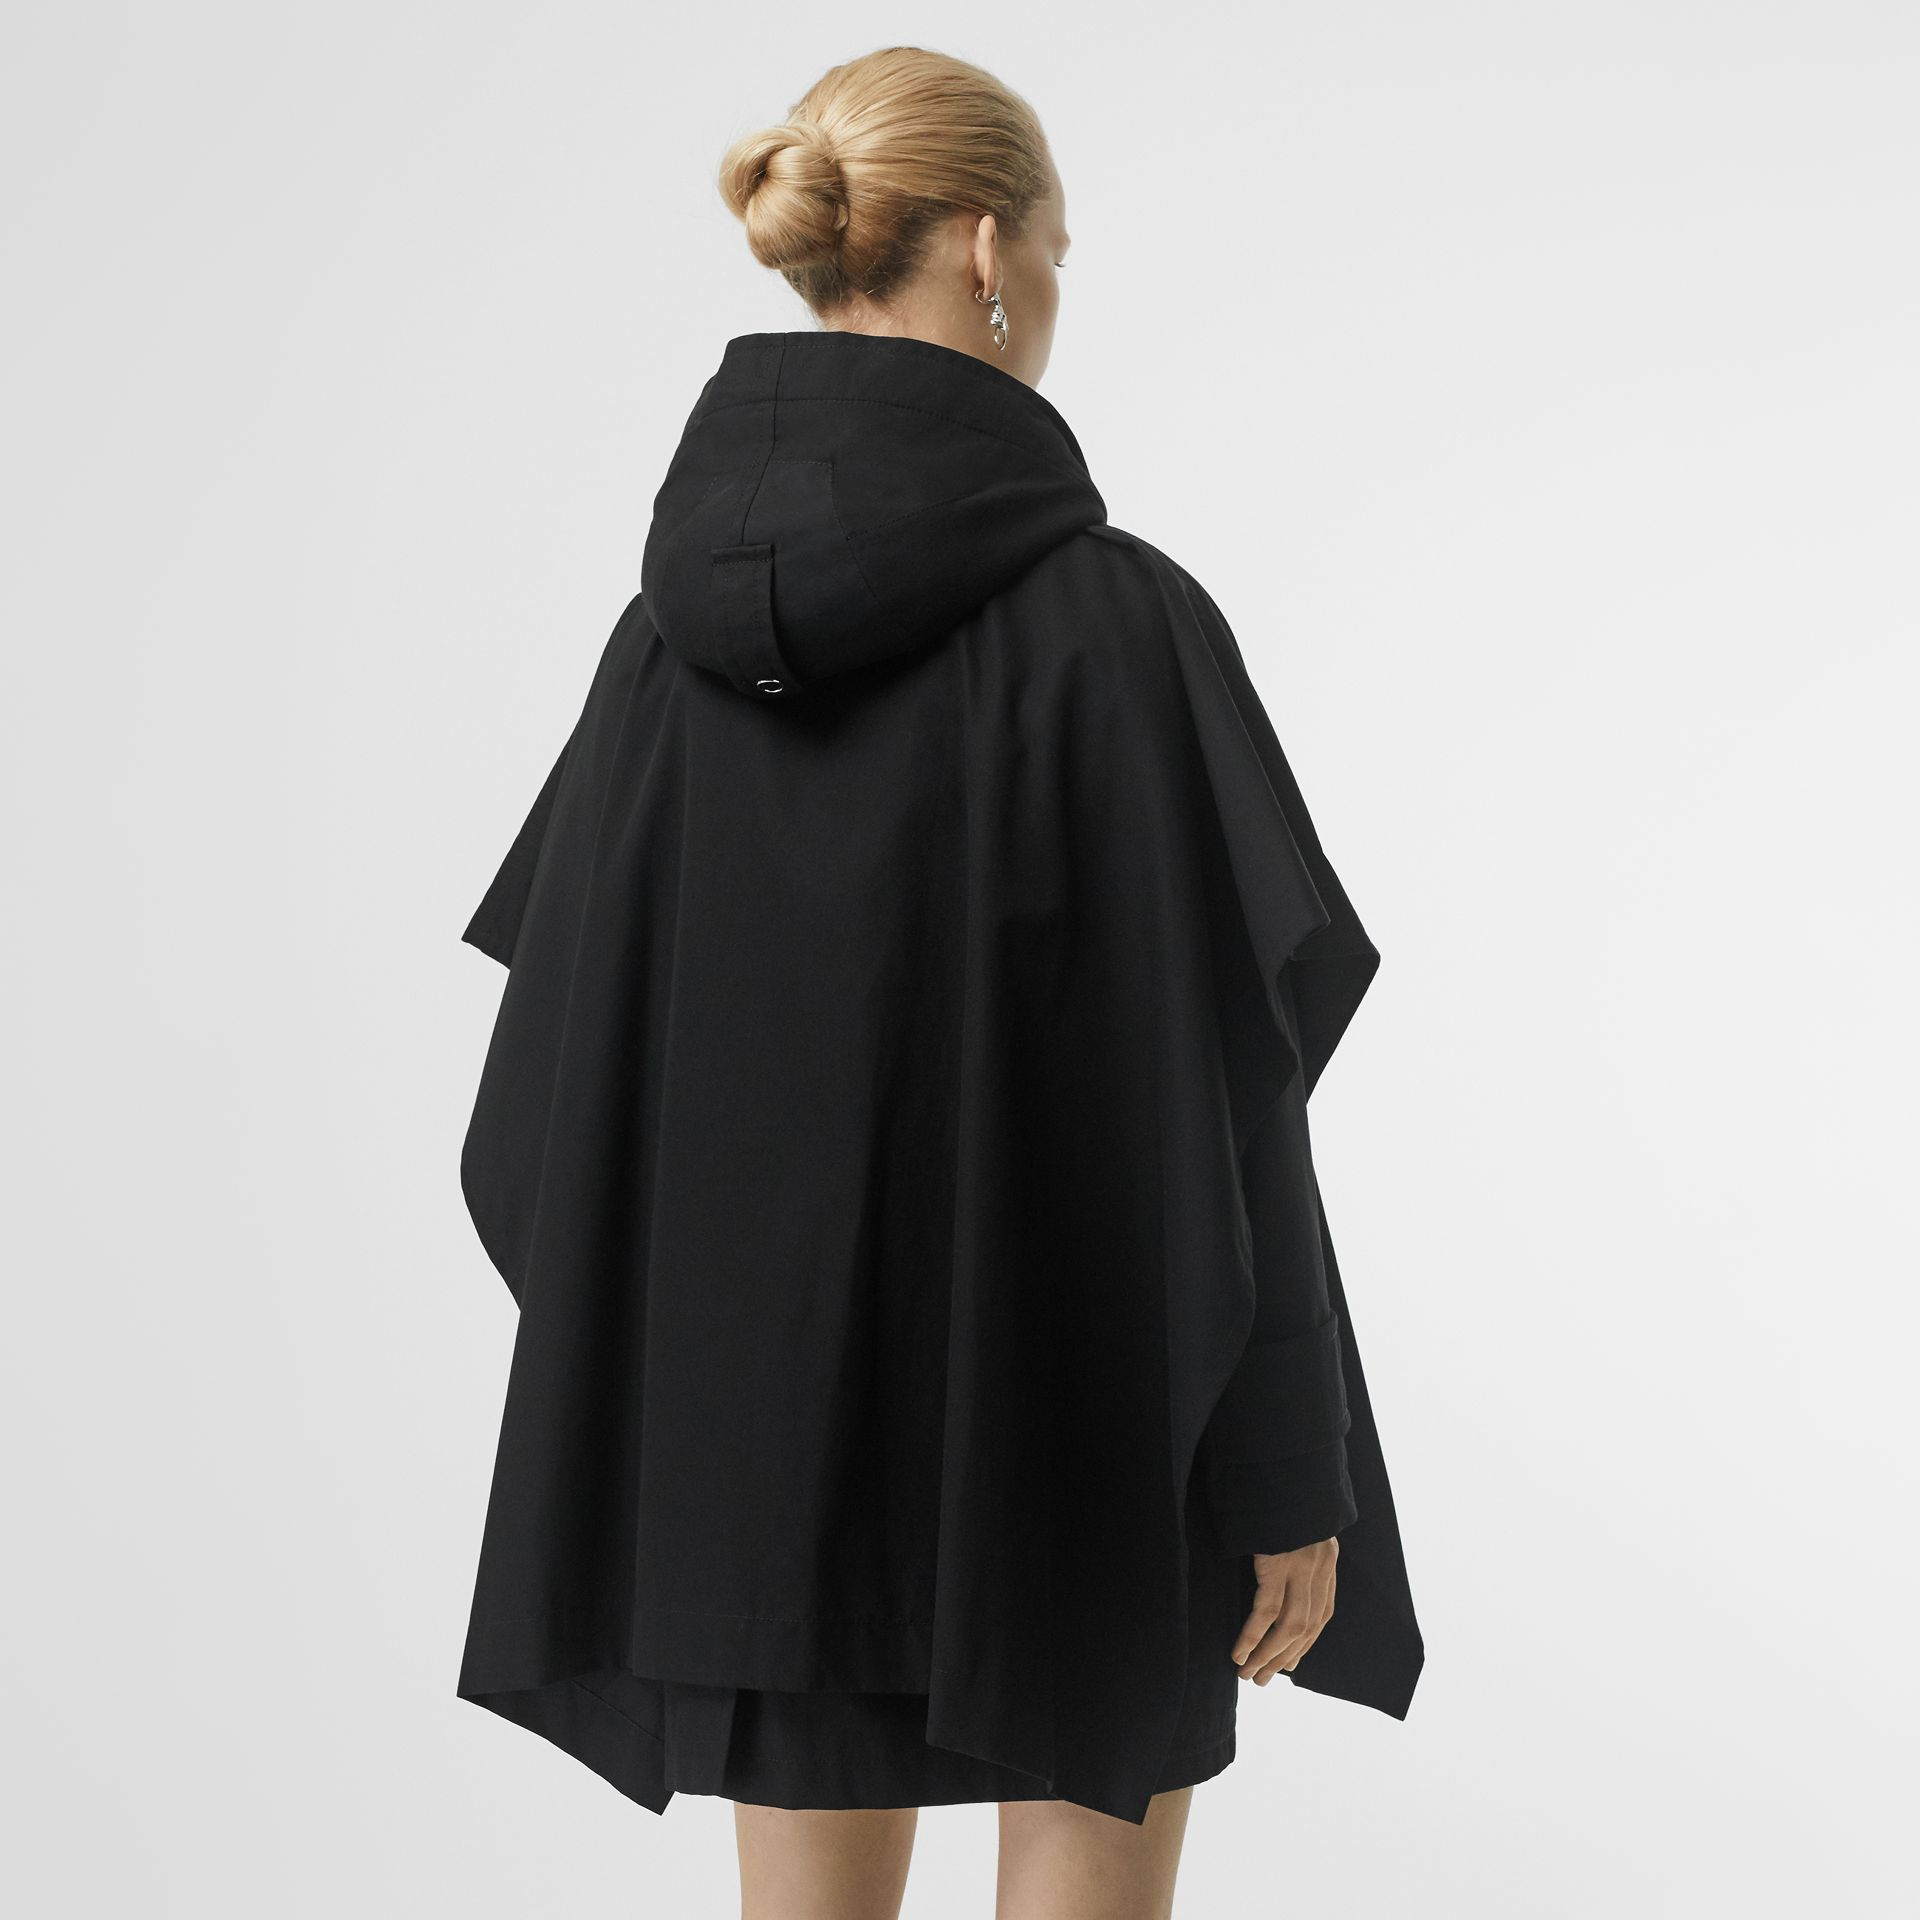 Triple Buckle Cotton Gabardine Cape Coat in Black - Women | Burberry Hong Kong S.A.R - gallery image 2